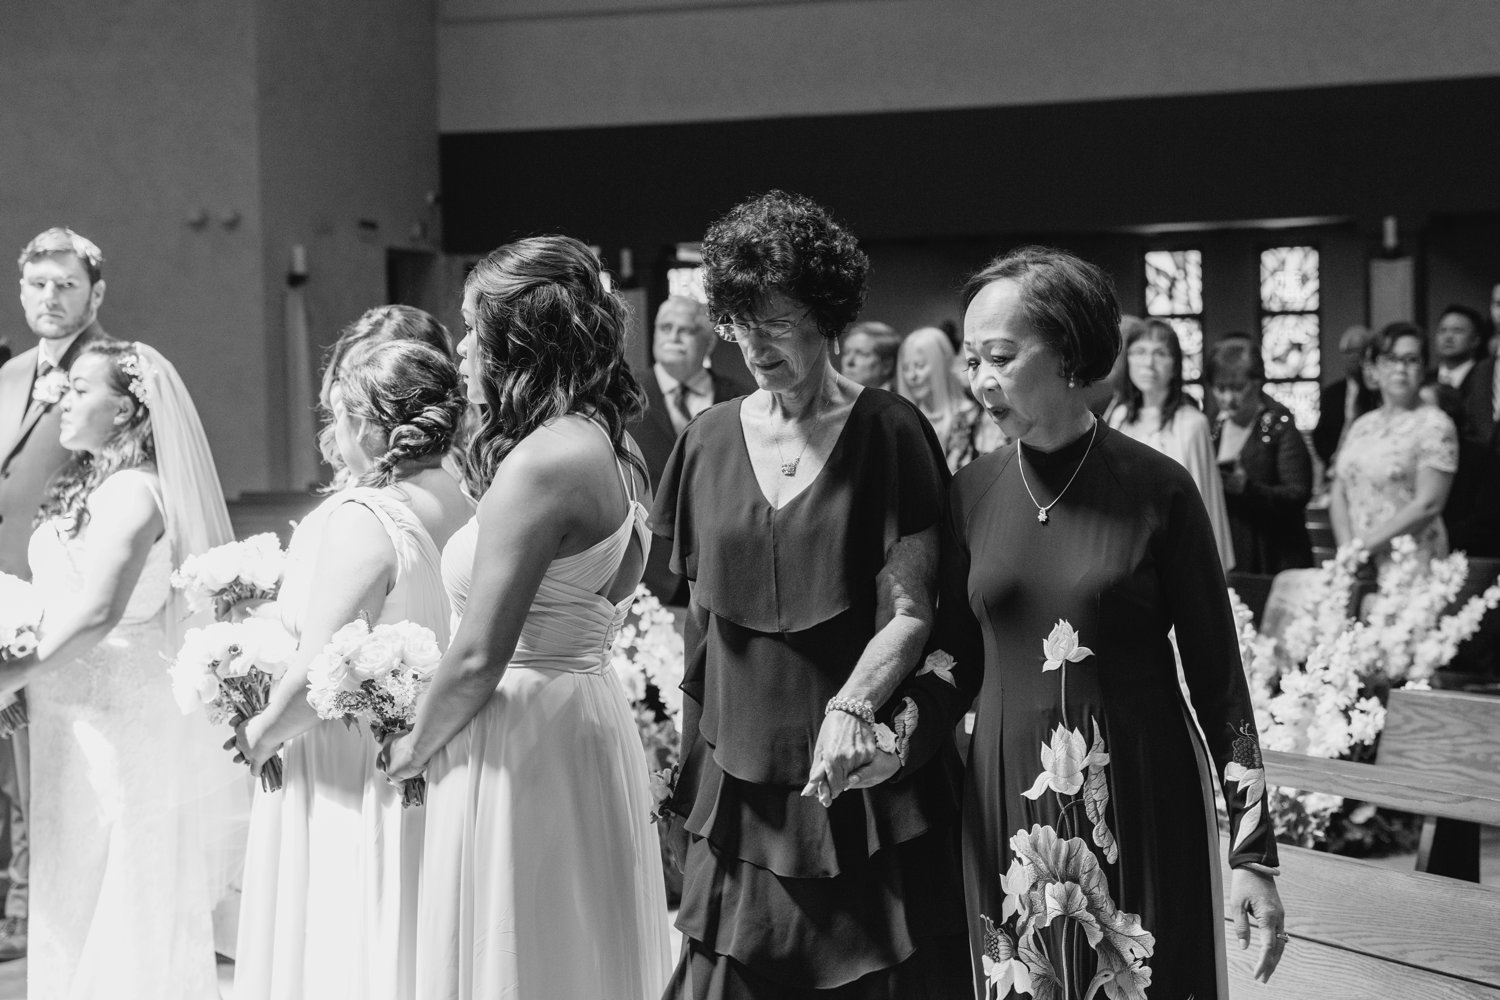 Irvine Wedding Kevin Le Vu Photography- 51.jpg